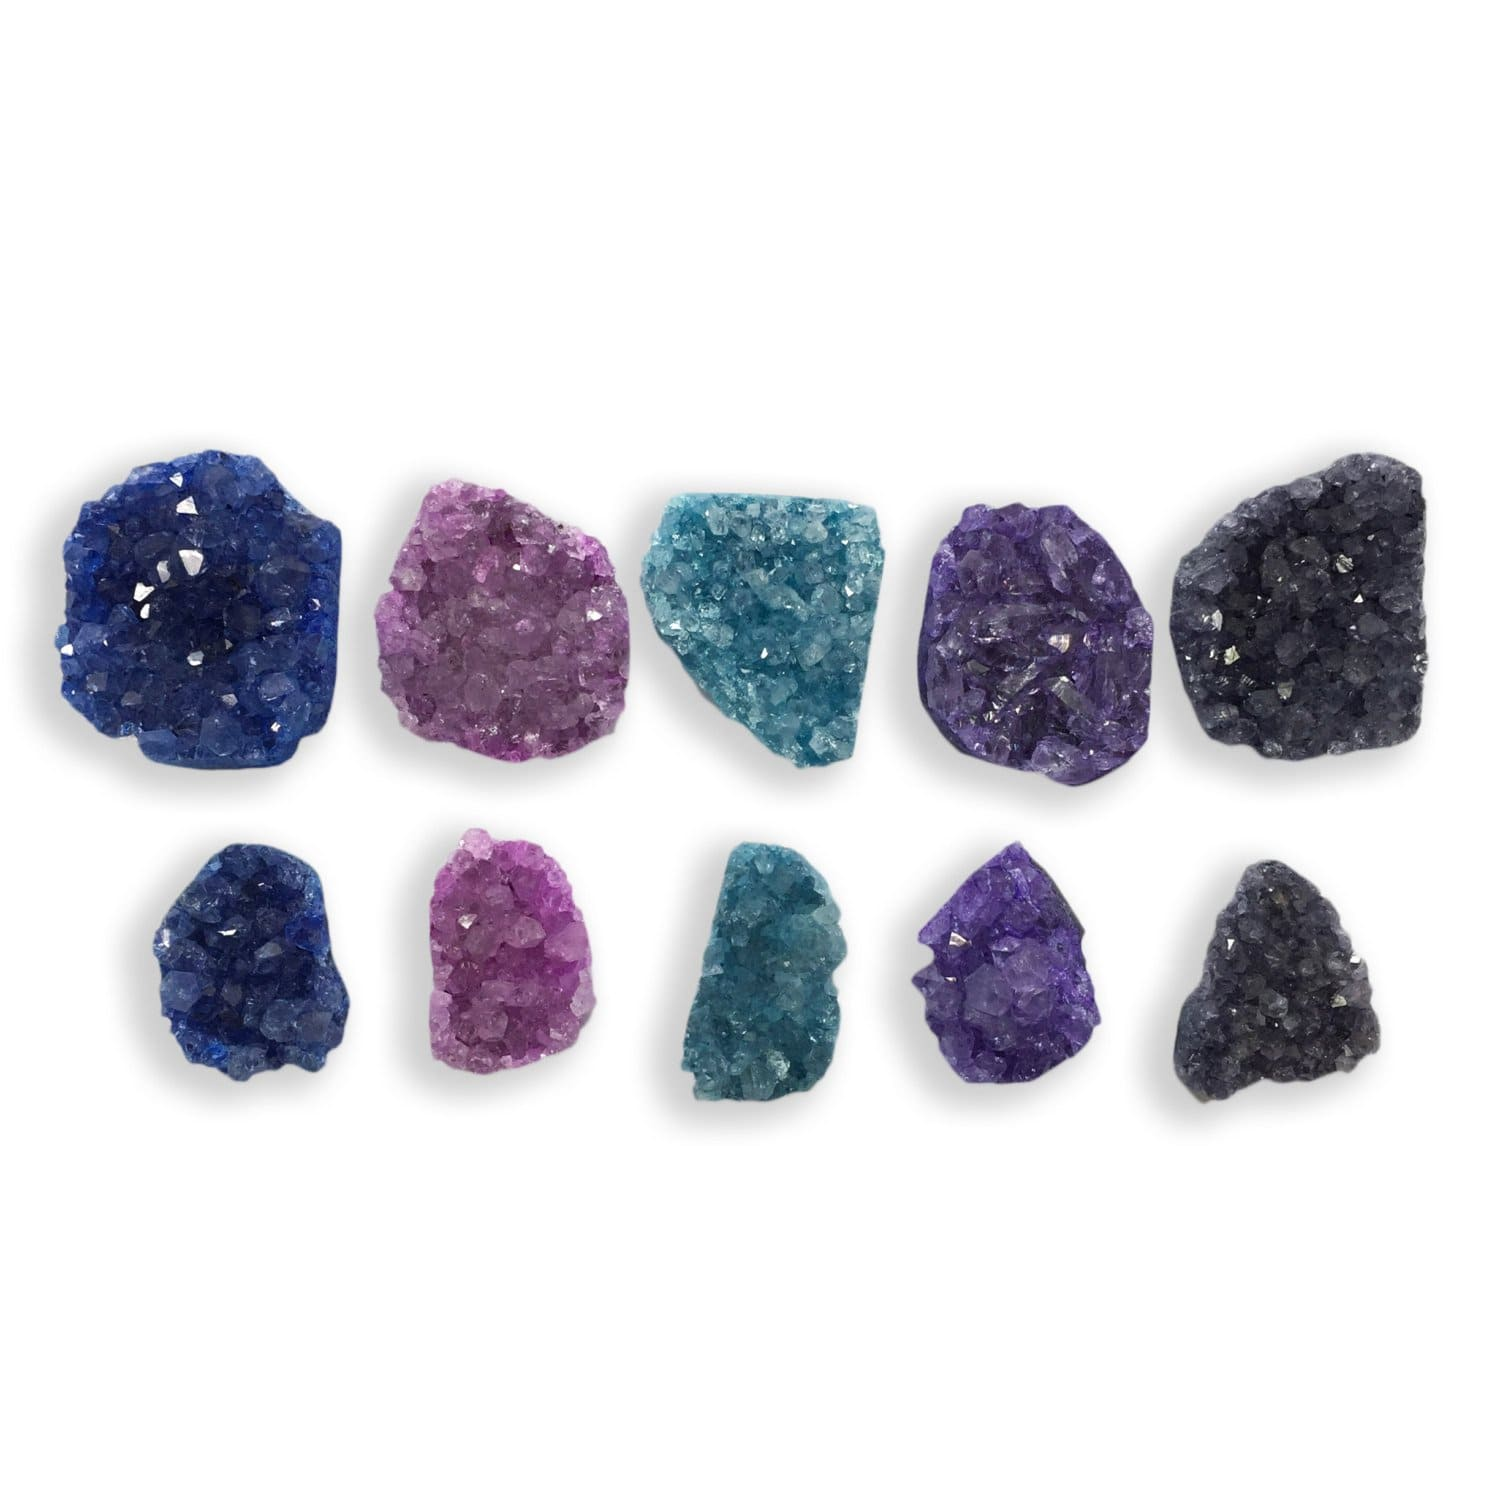 Druzy - 5 Pcs DRUZY Crystals - Mixed Colors -  Free Form - Set Of 5  - Medium Size - Pendant Setting - Crystal Decor (RK50B5)